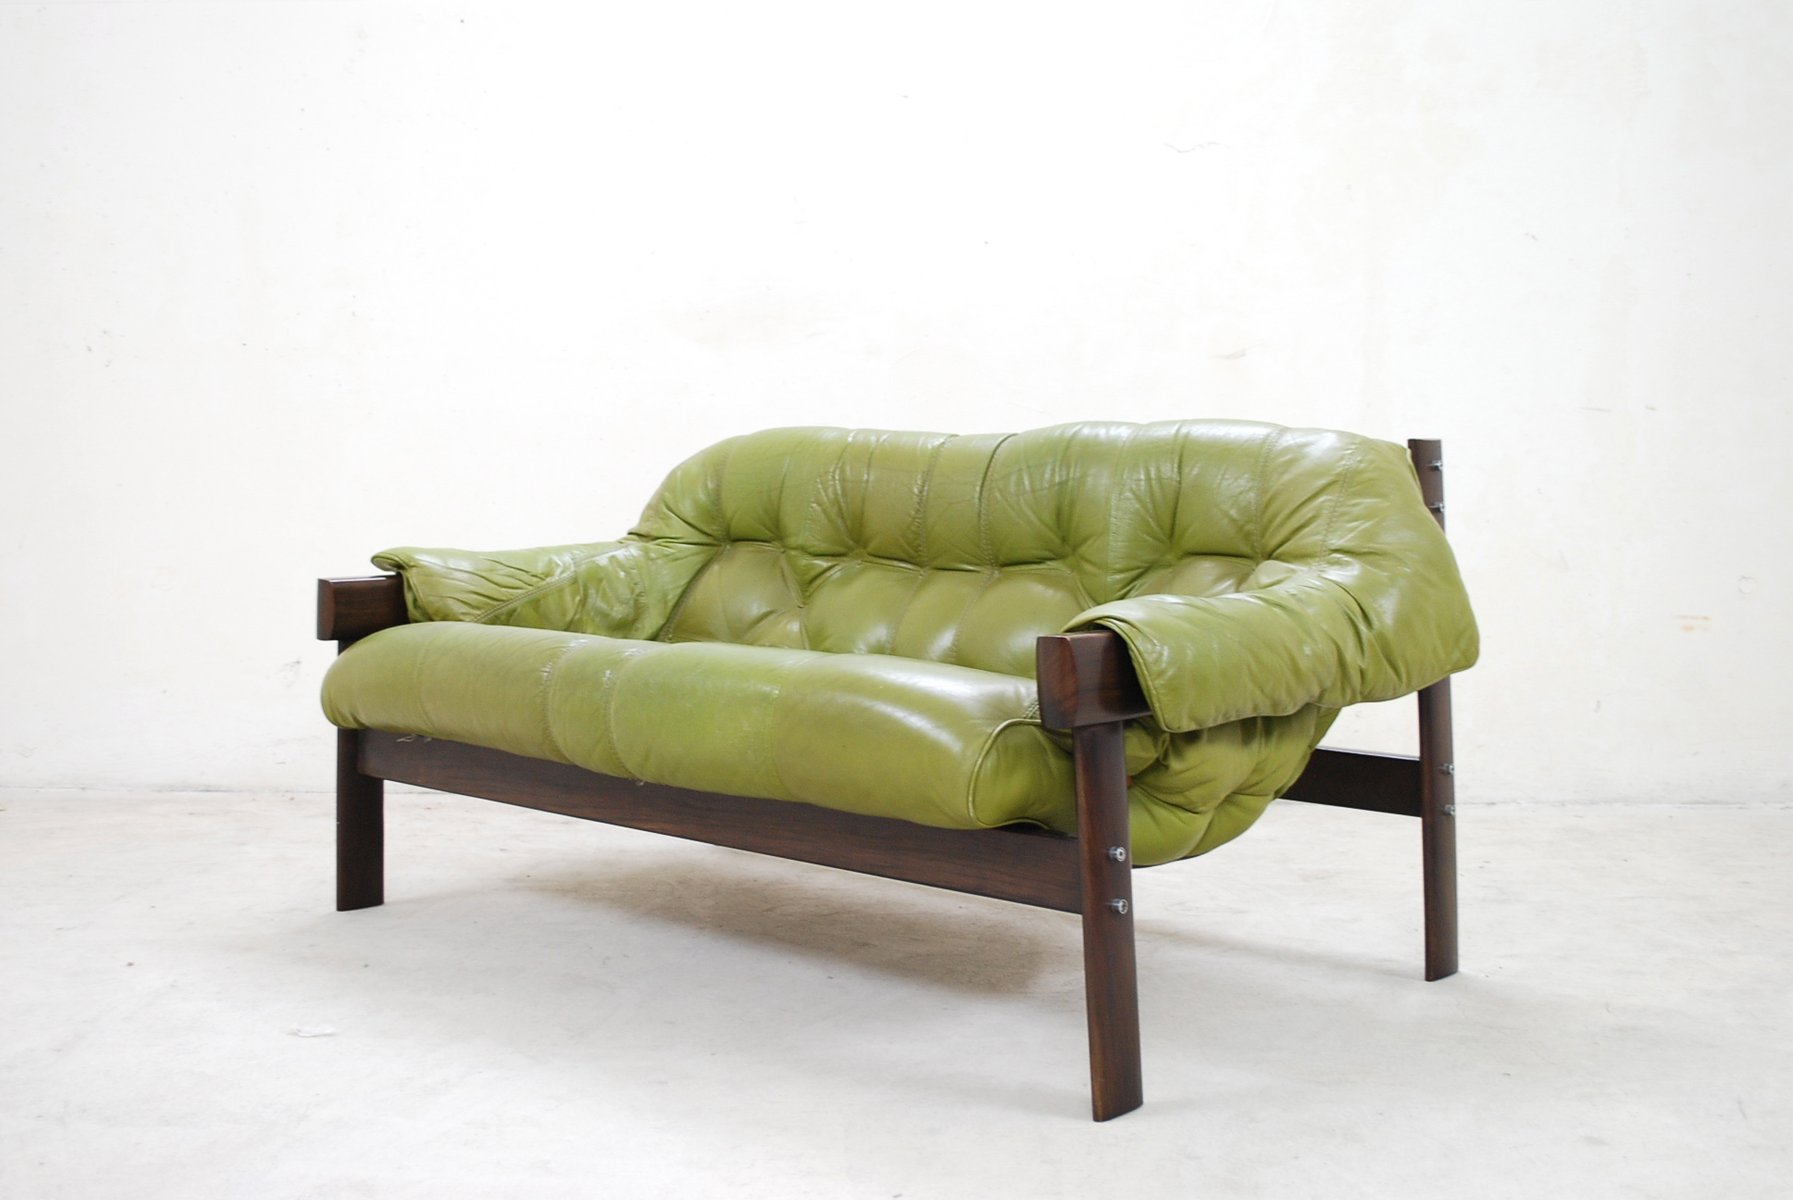 Exceptional Model MP 041 Green Leather Sofa From Percival Lafer, 1961